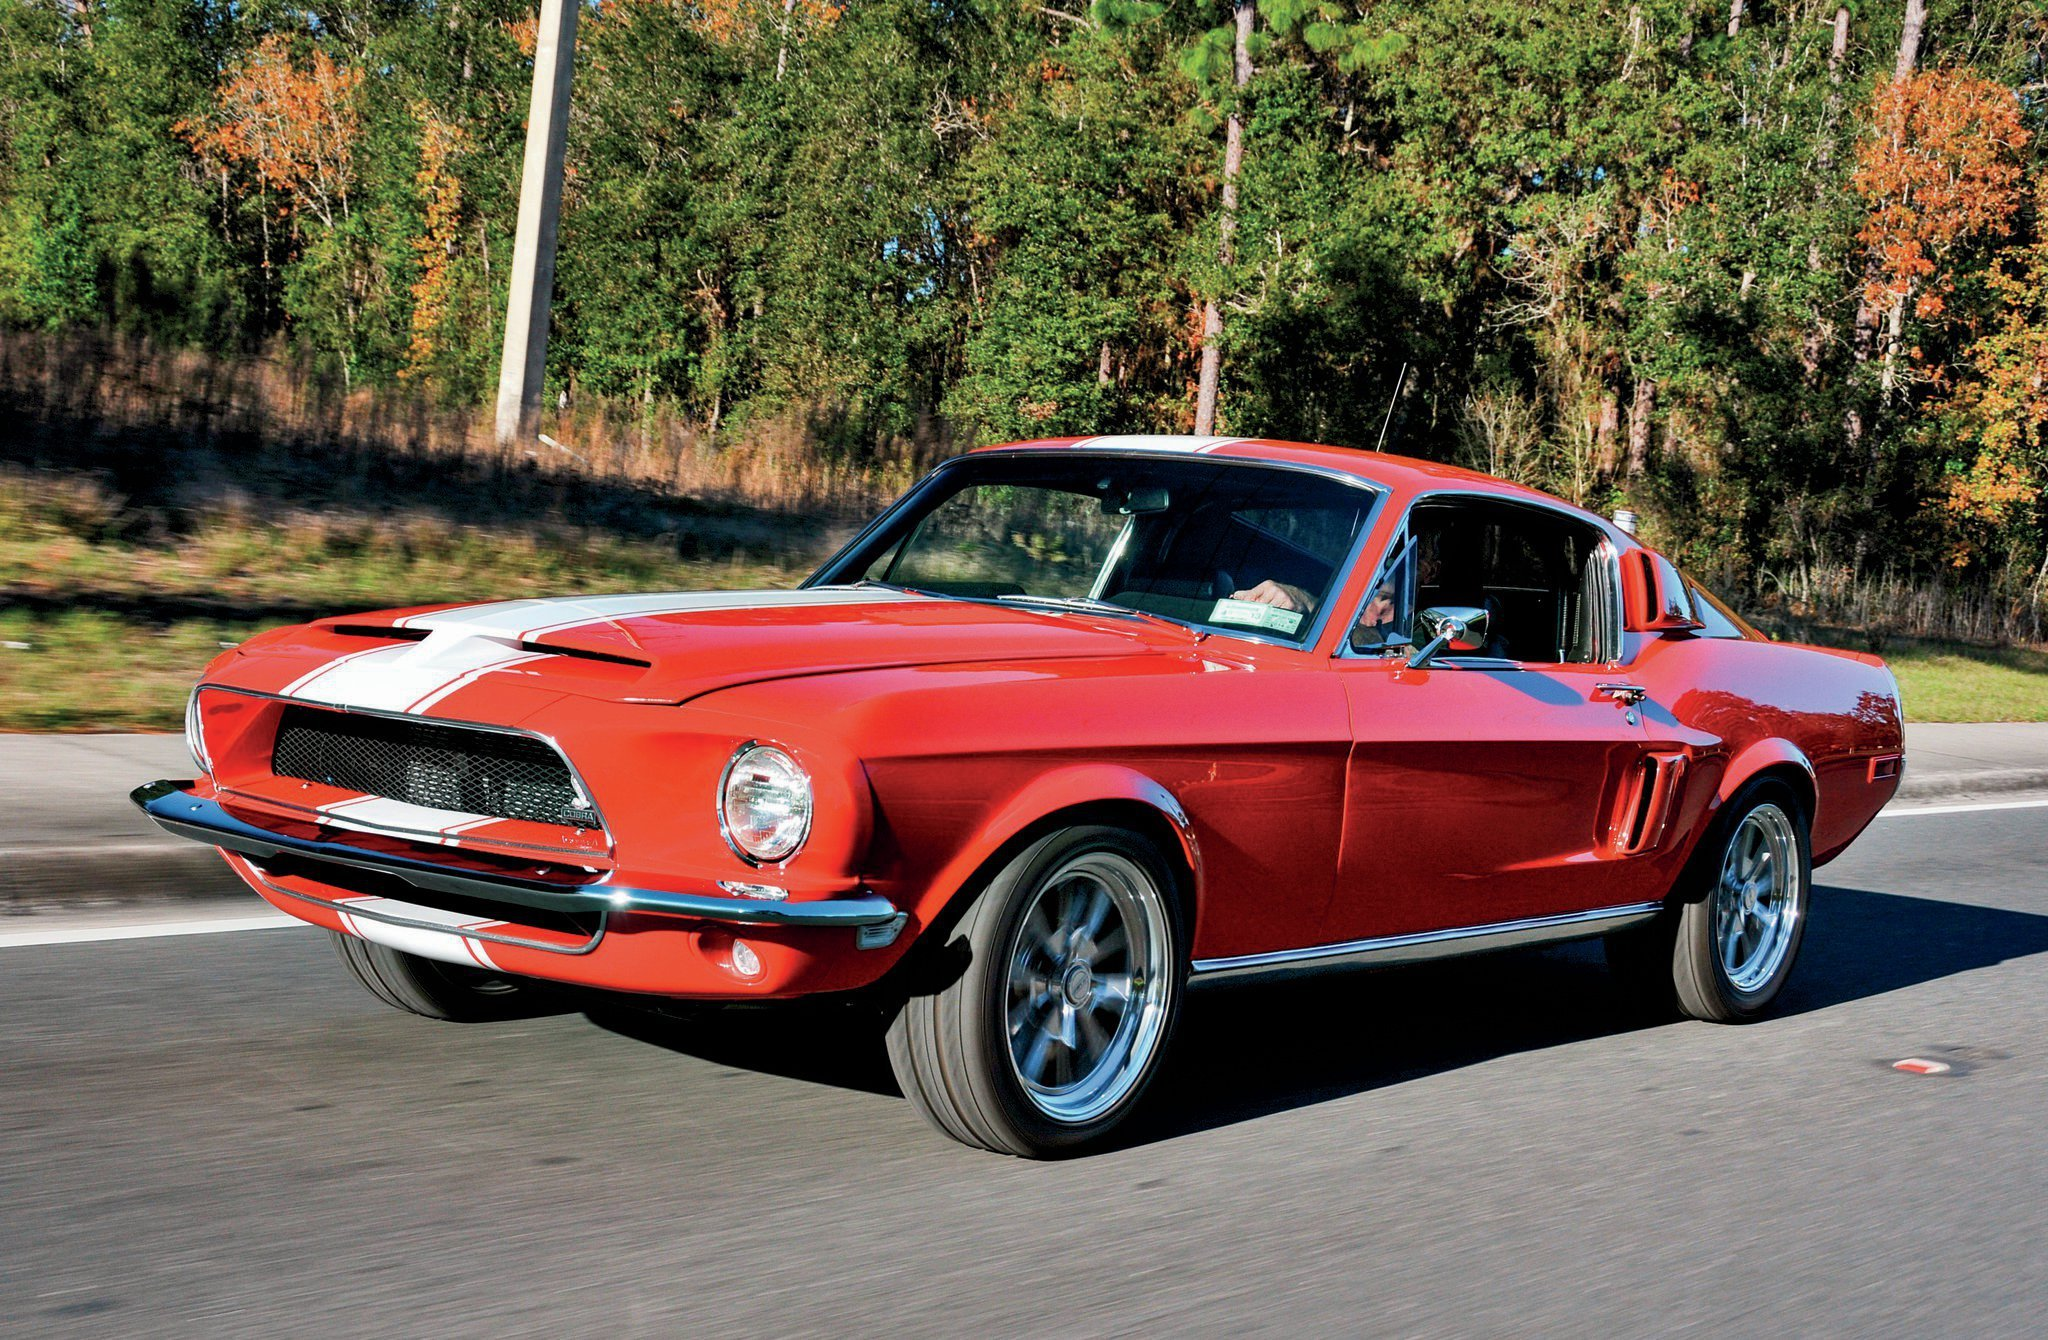 1968 Ford Mustang Fastback Shelby Gt 350 Streetrod Street